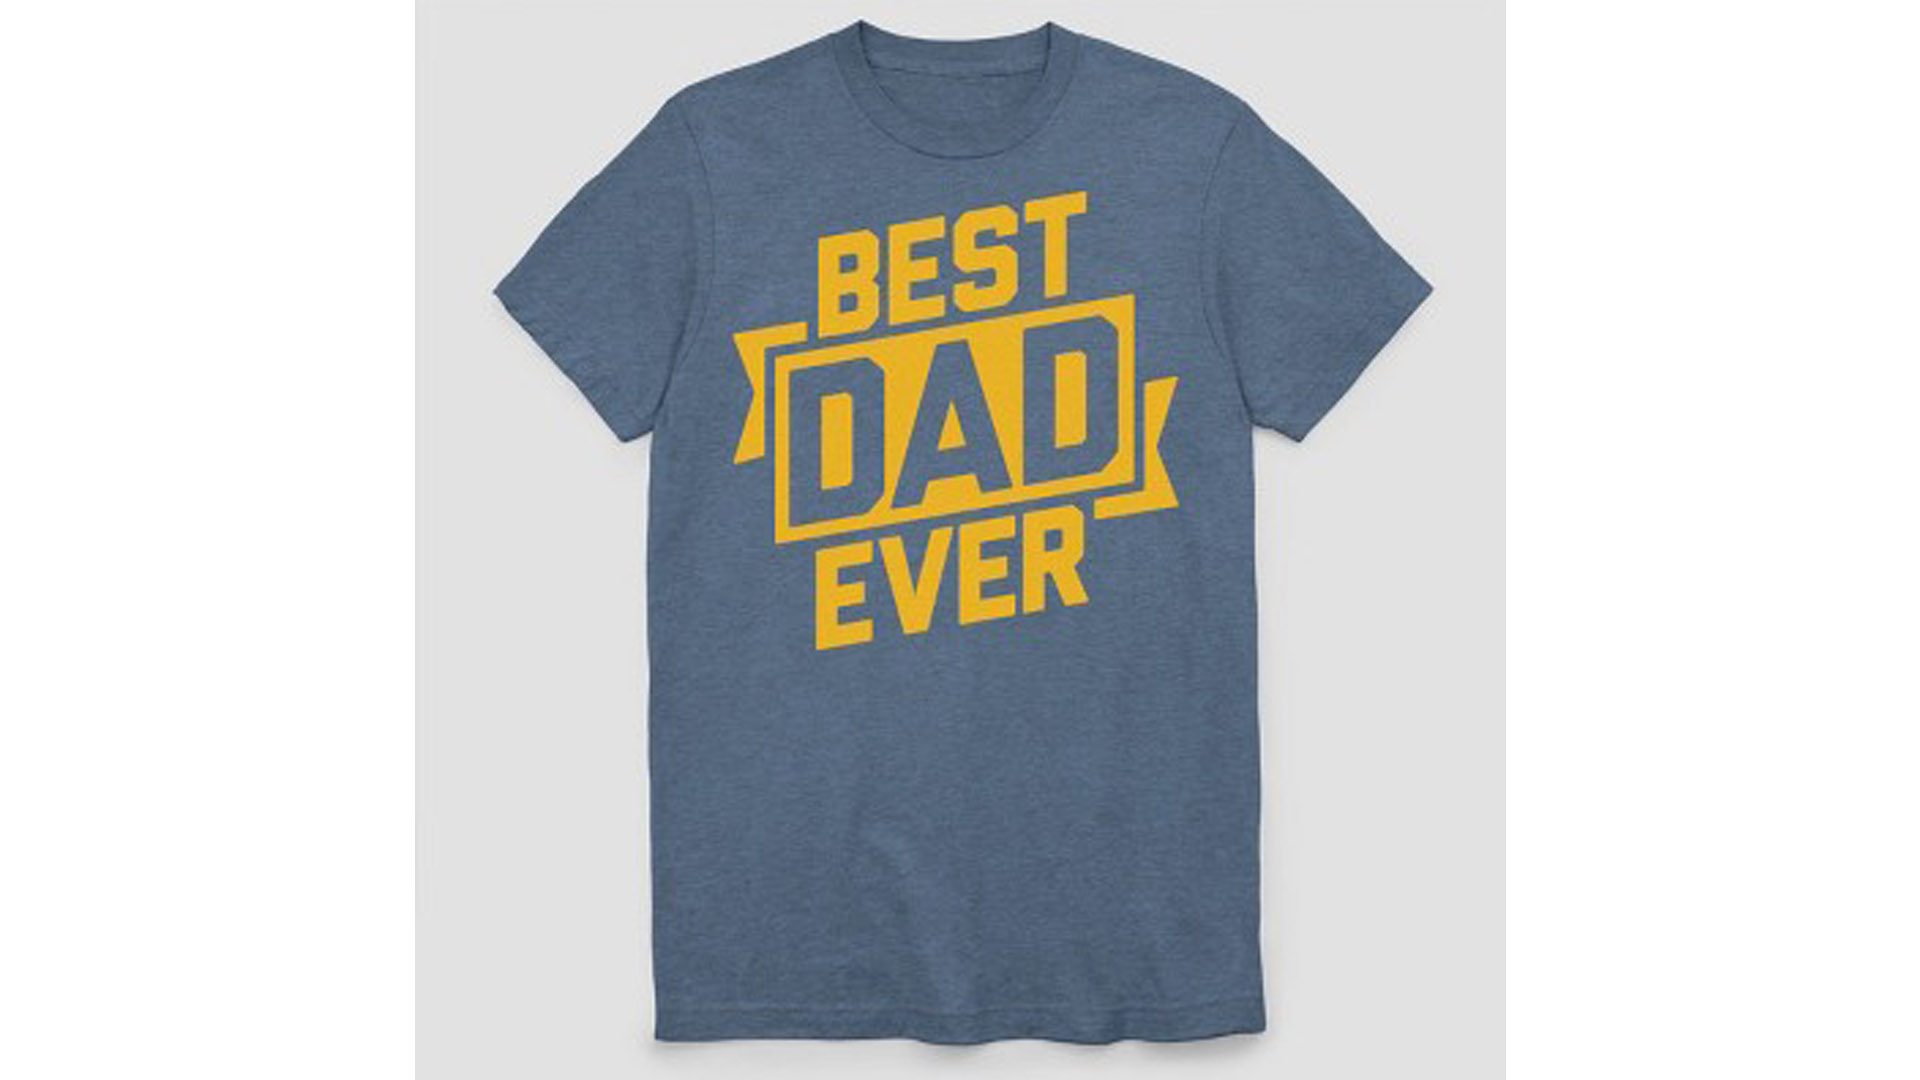 Purchase Best Dad Ever - One Of 10 Awesome T-Shirts Through Lemoney